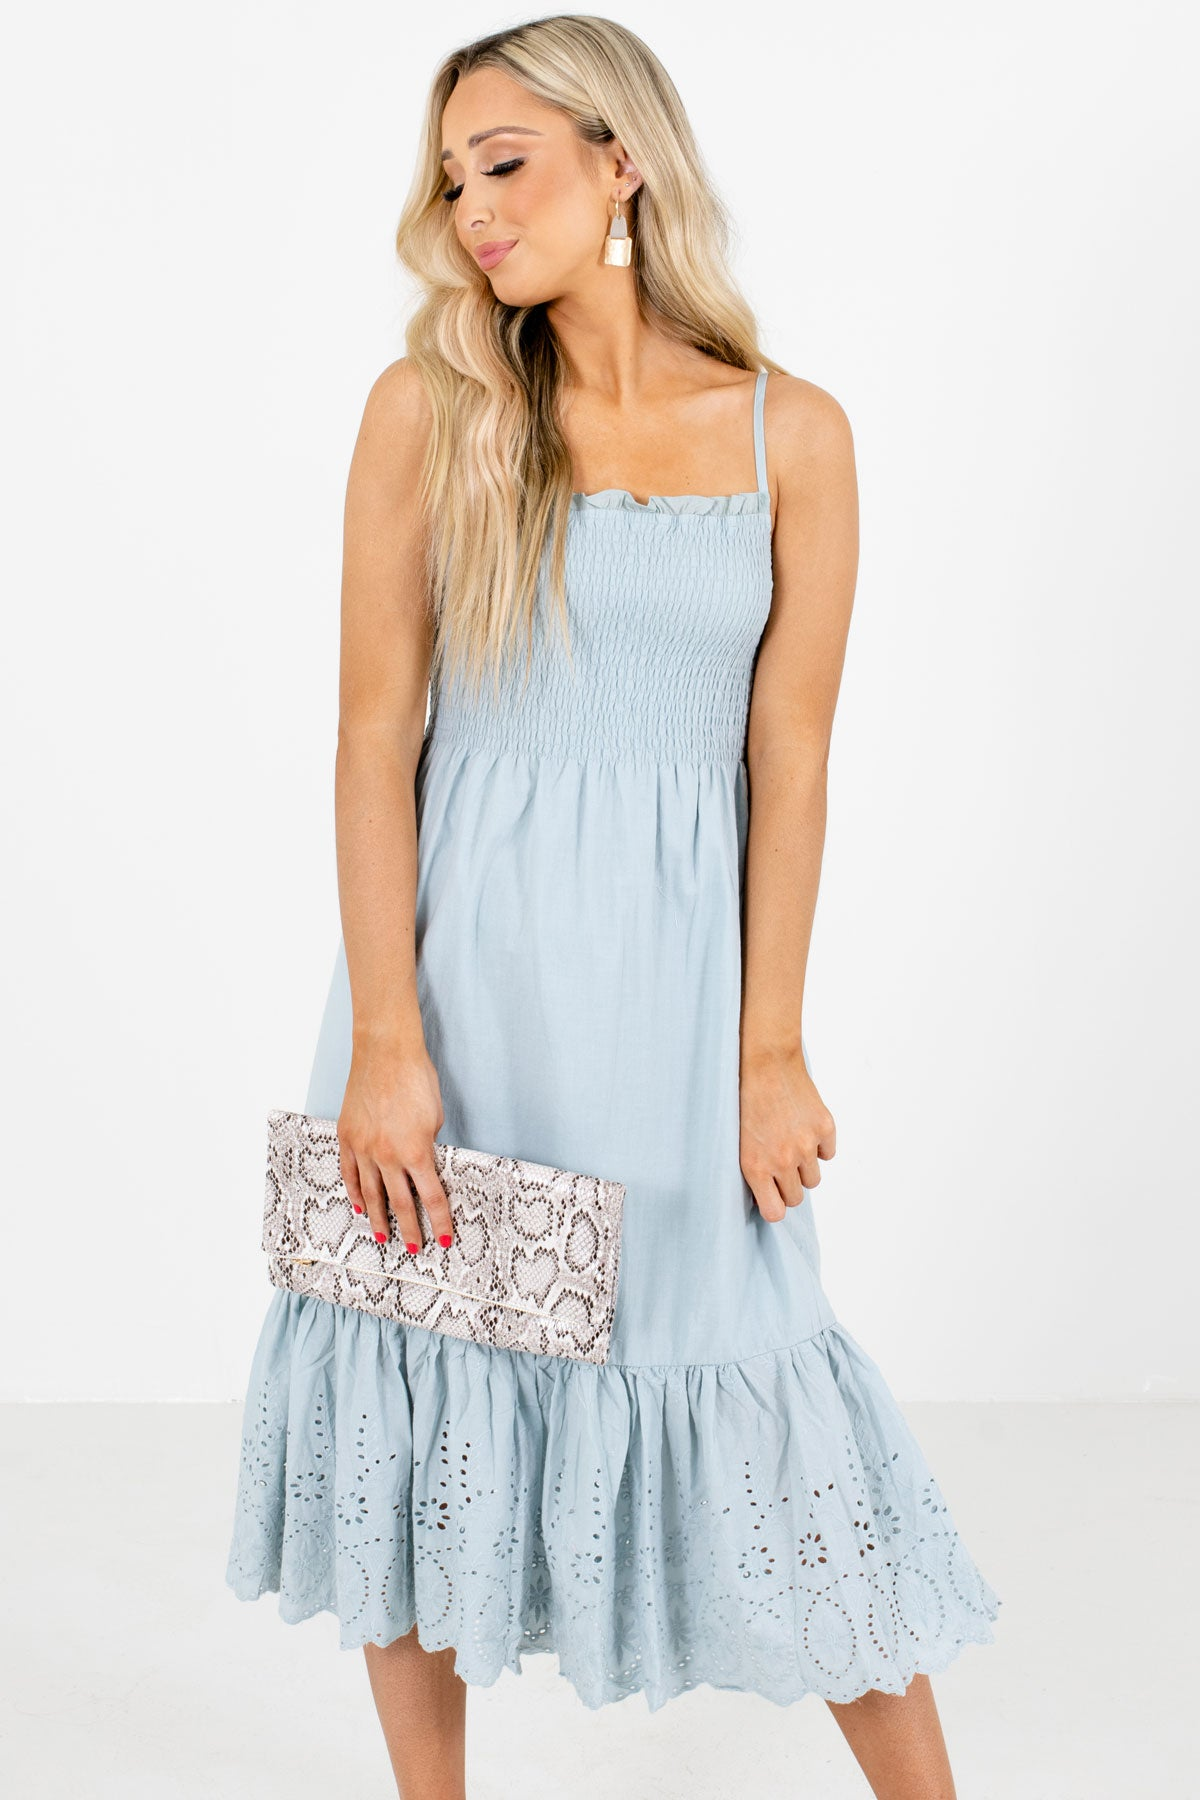 Blue Smocked Bodice Boutique Midi Dresses for Women